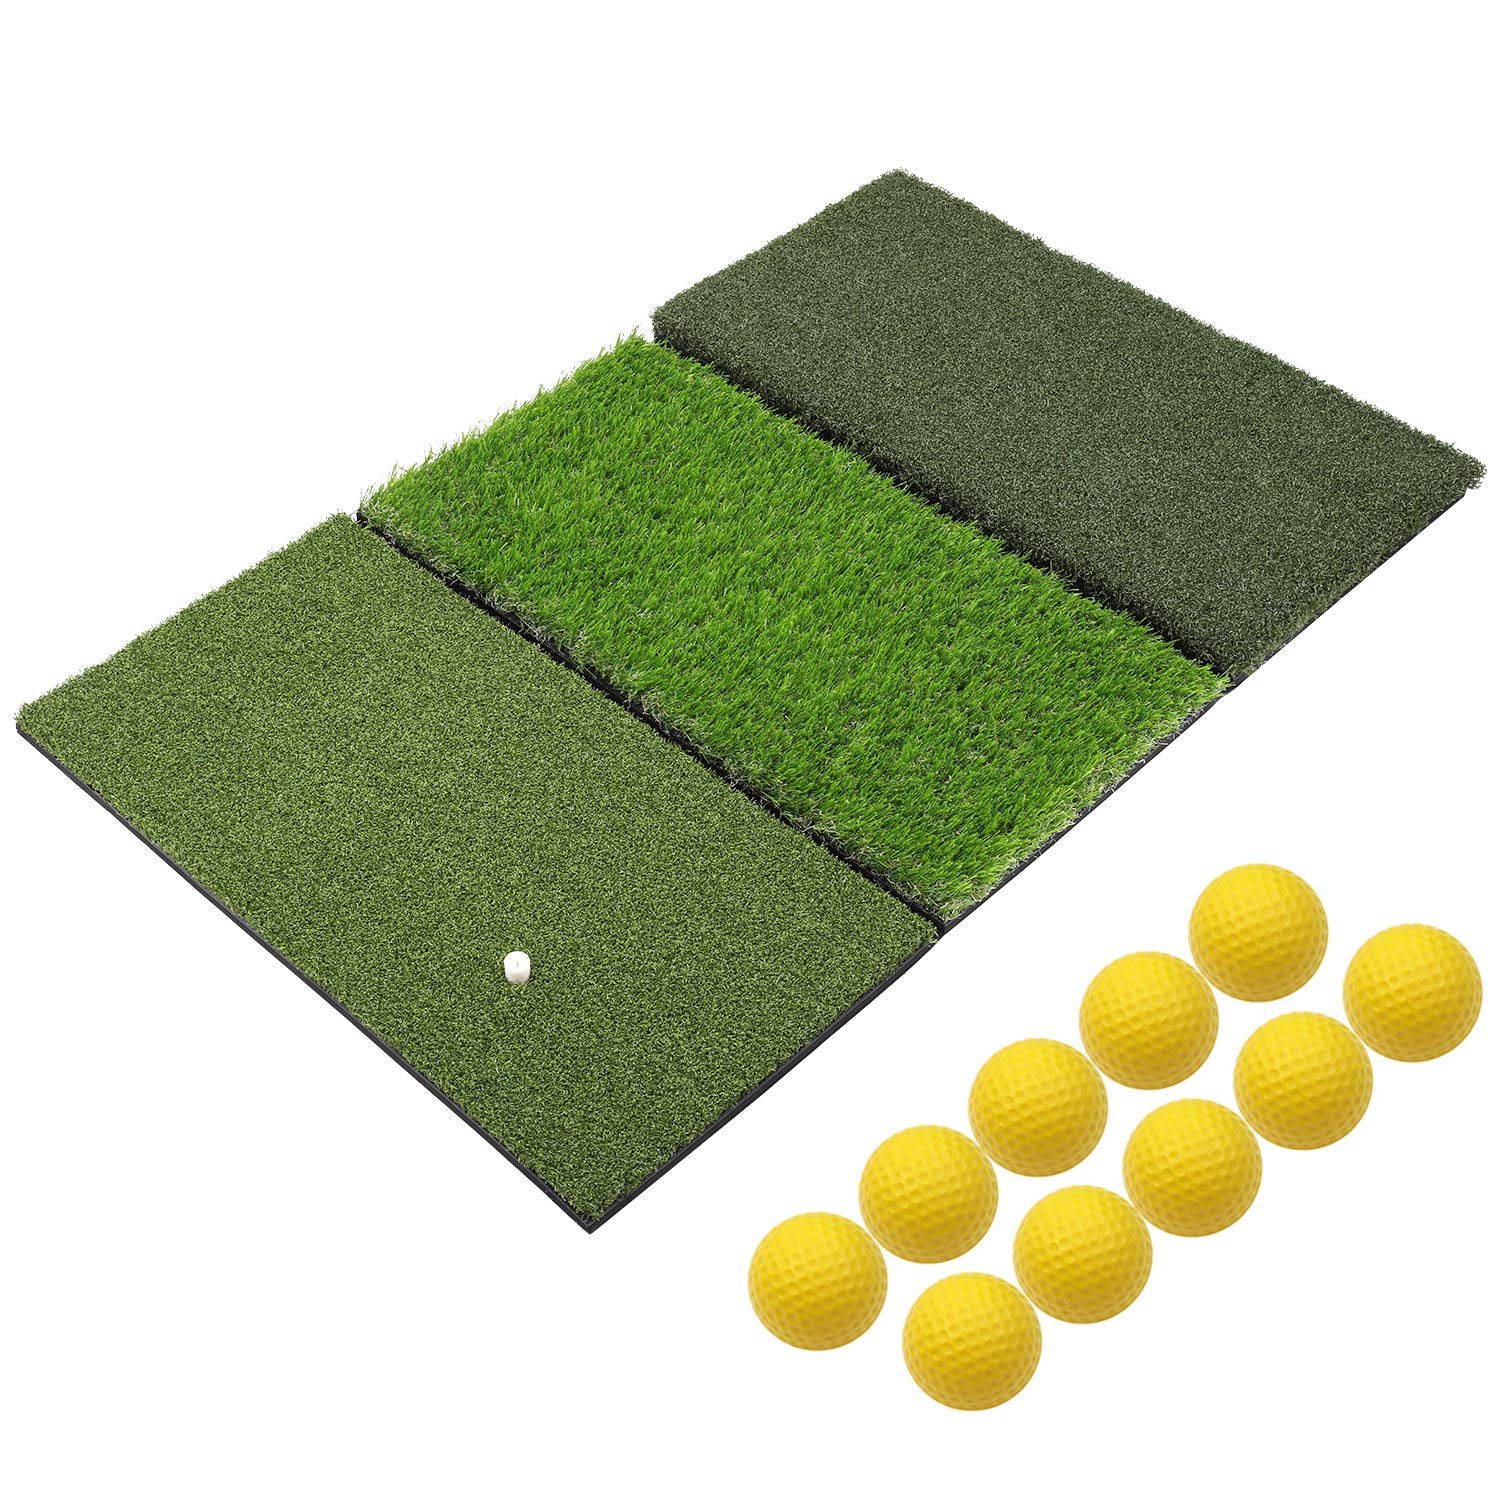 SkyLife 3-Turf Golf Hitting Grass Mat 24'' x 37'', Portable Training Fairway Rough TEE Turf, Driving Chipping Putting Golf Equipment, Home Backyard Garage Outdoor Practice (XL 24'' X 37'') by SkyLife